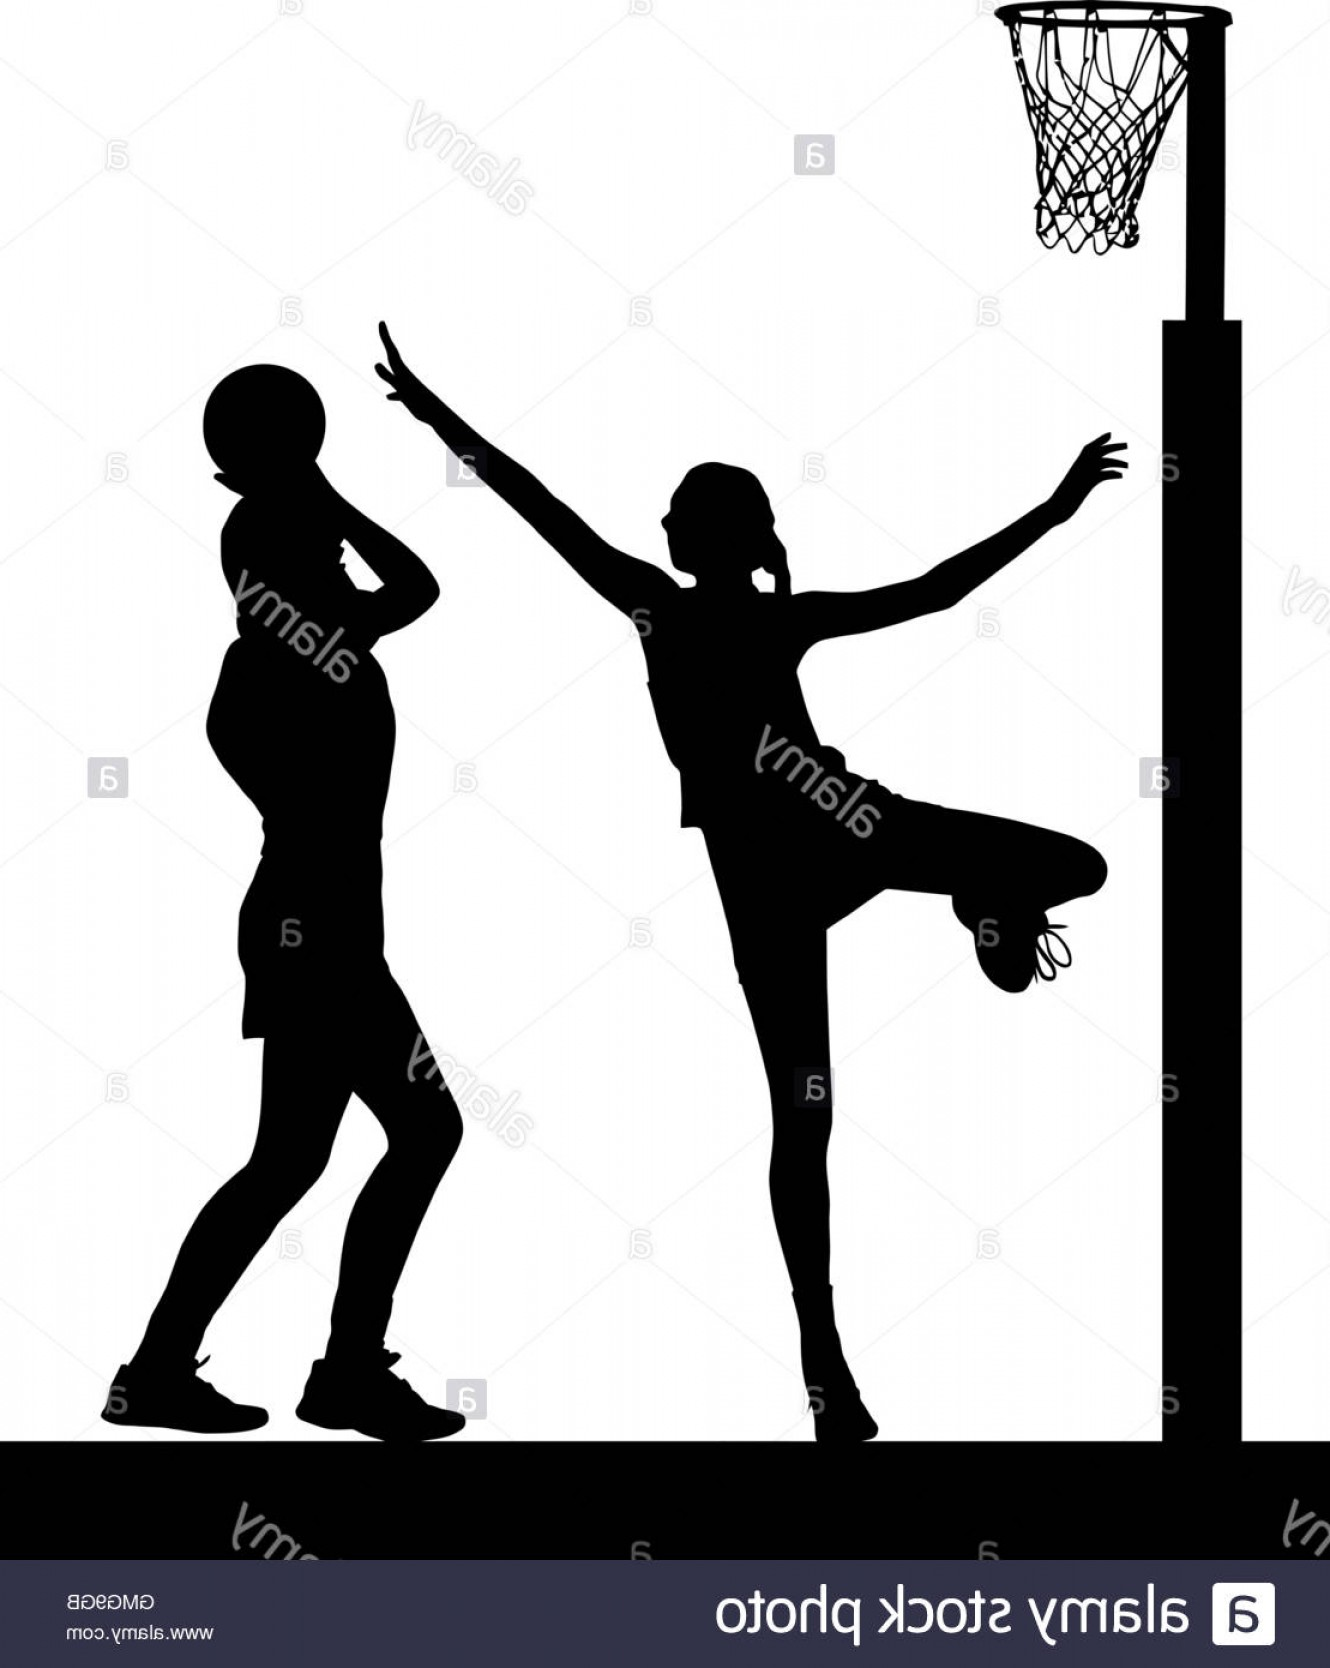 Volleyball Vector Dog Lady: Stock Photo Black On White Silhouette Of Girls Ladies Netball Players Jumping